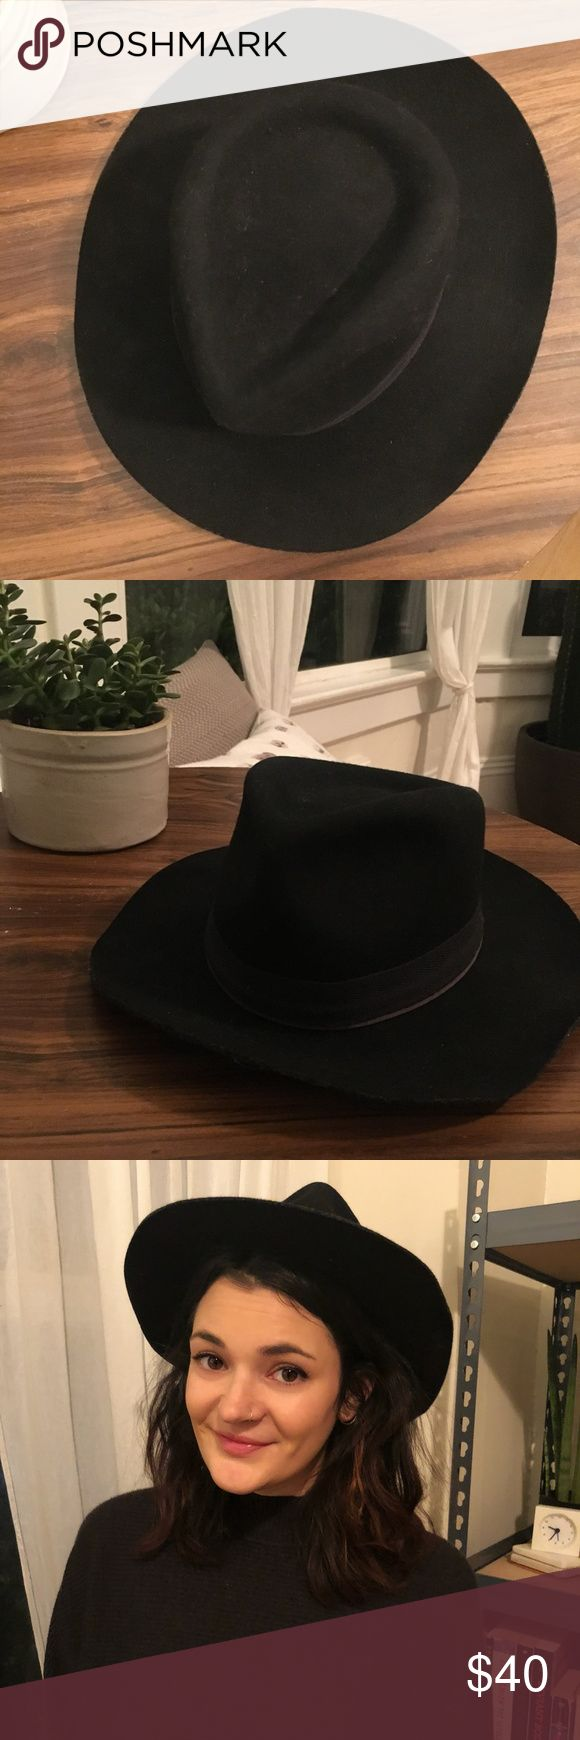 Madewell x Biltmore Hat Medium/large 100% wool black hat Madewell Accessories Hats